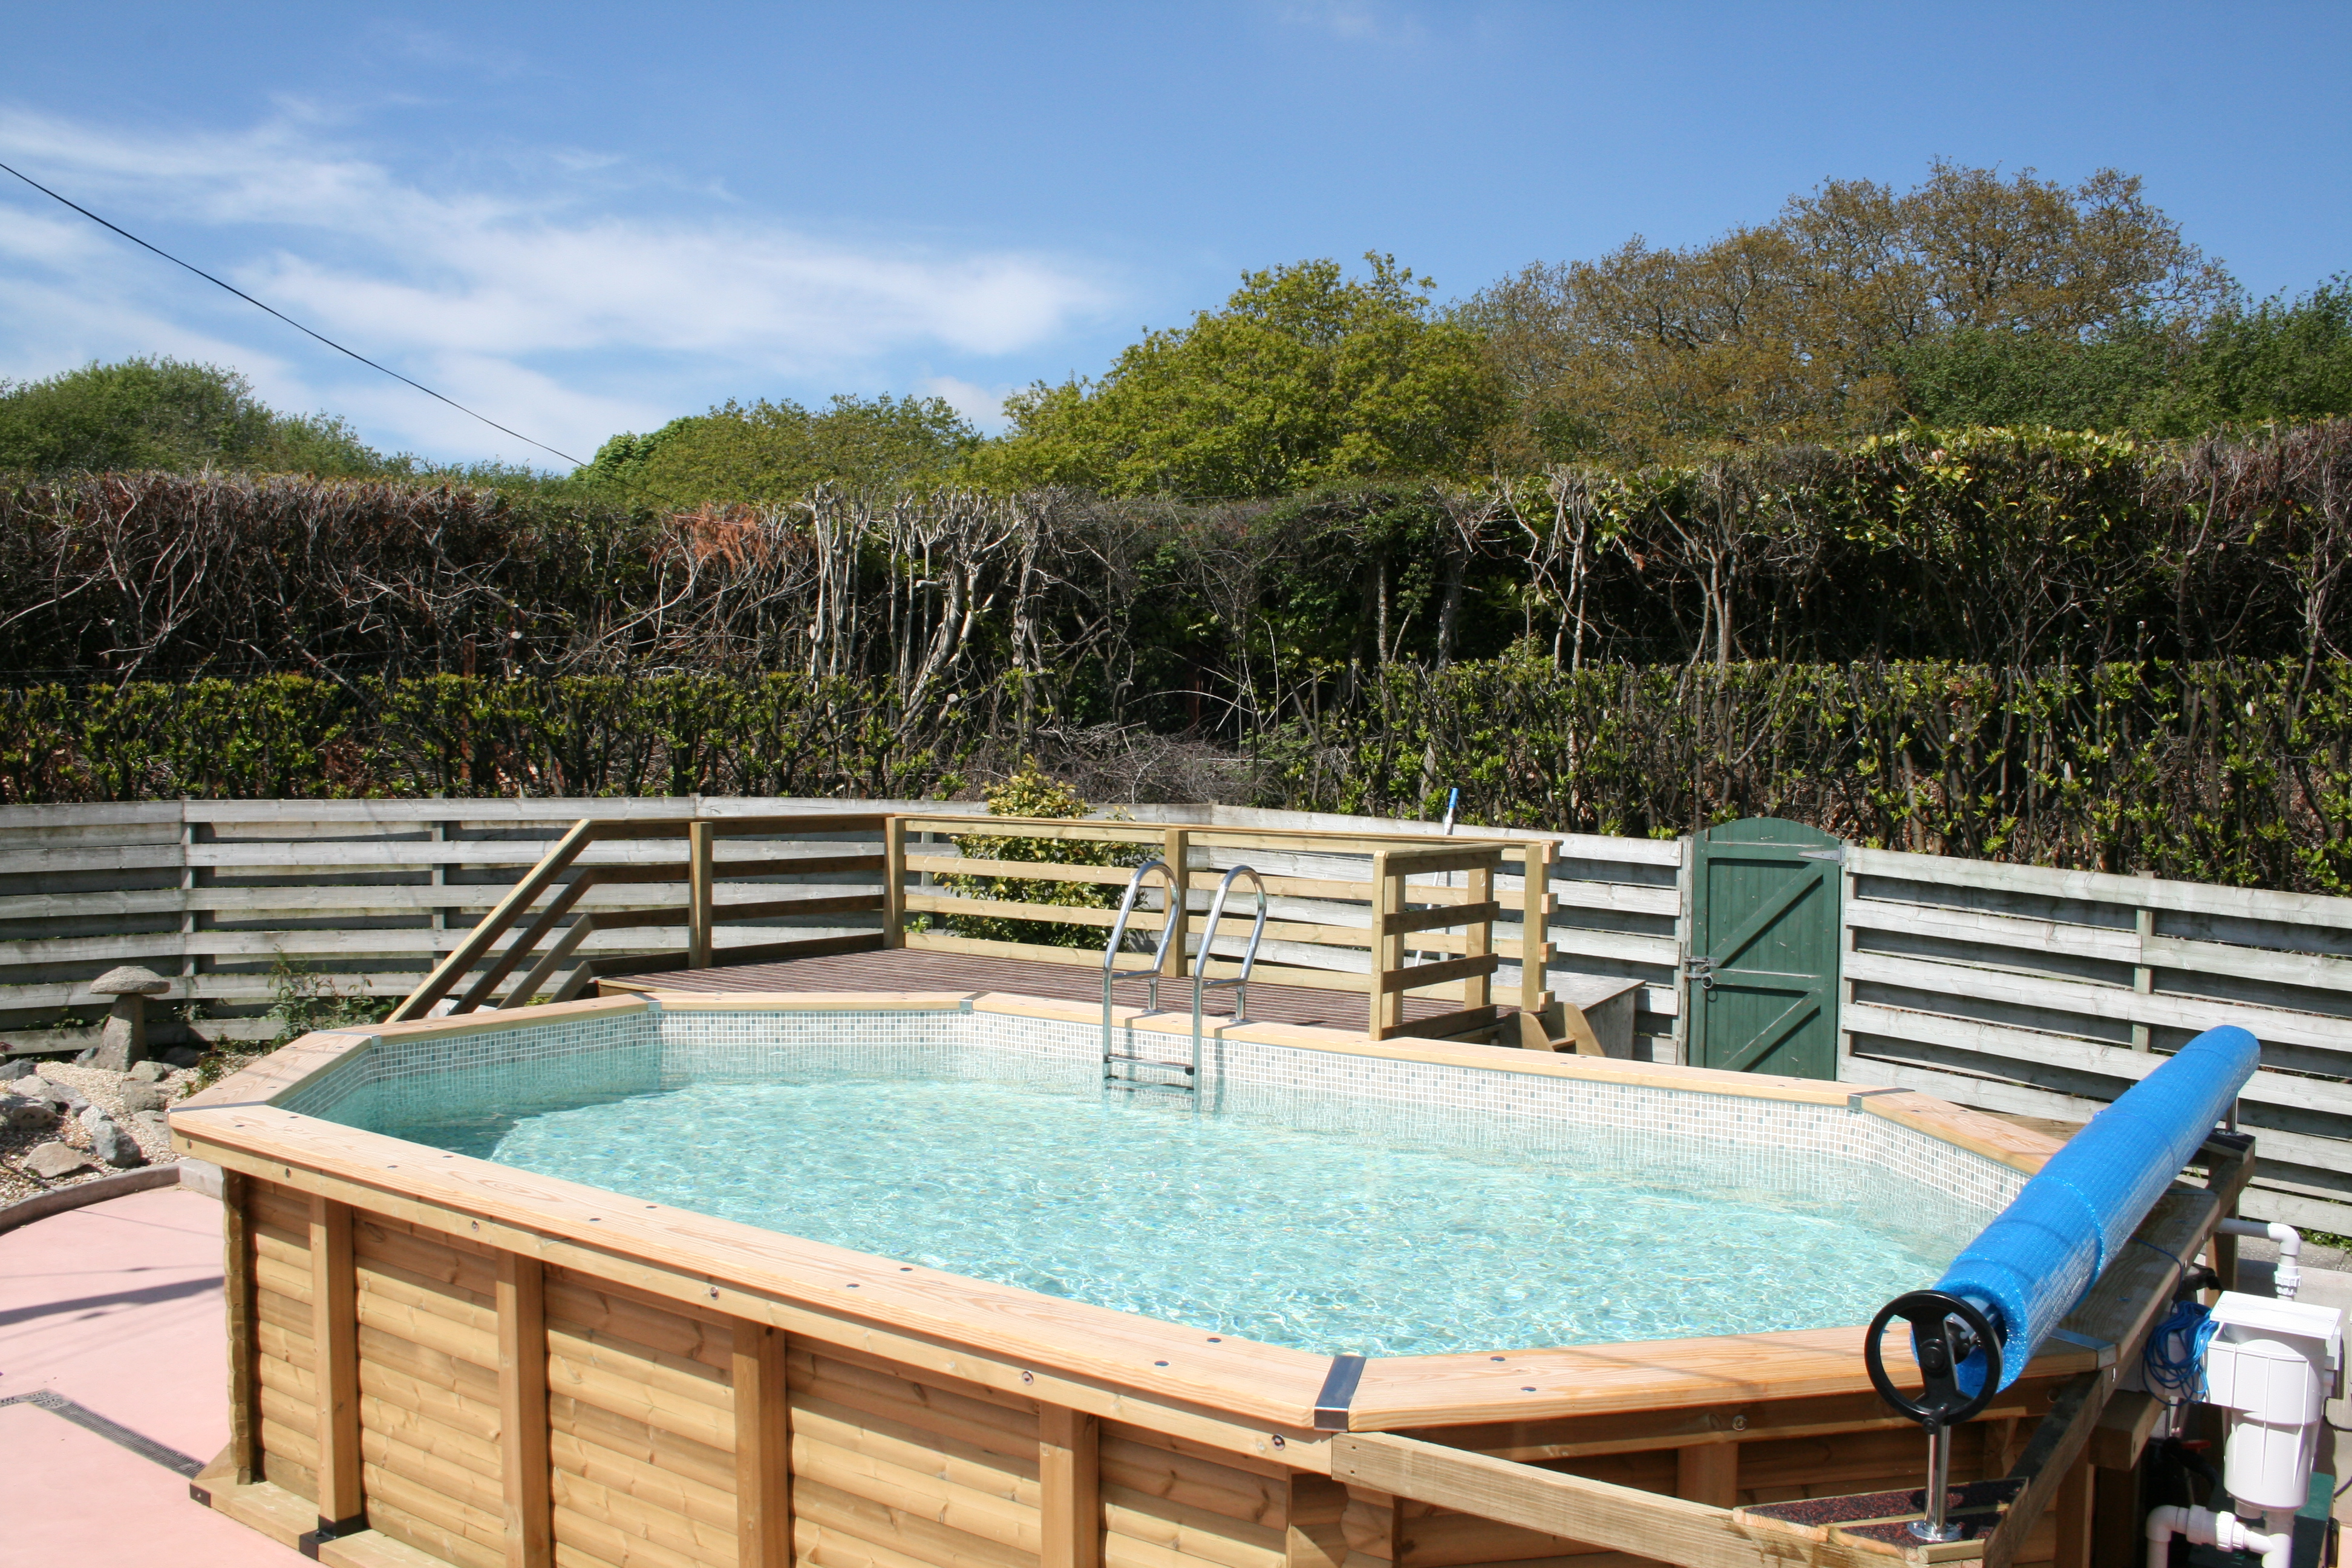 Cornwall pools above ground pools cornwall pools - Hotels with swimming pools cornwall ...